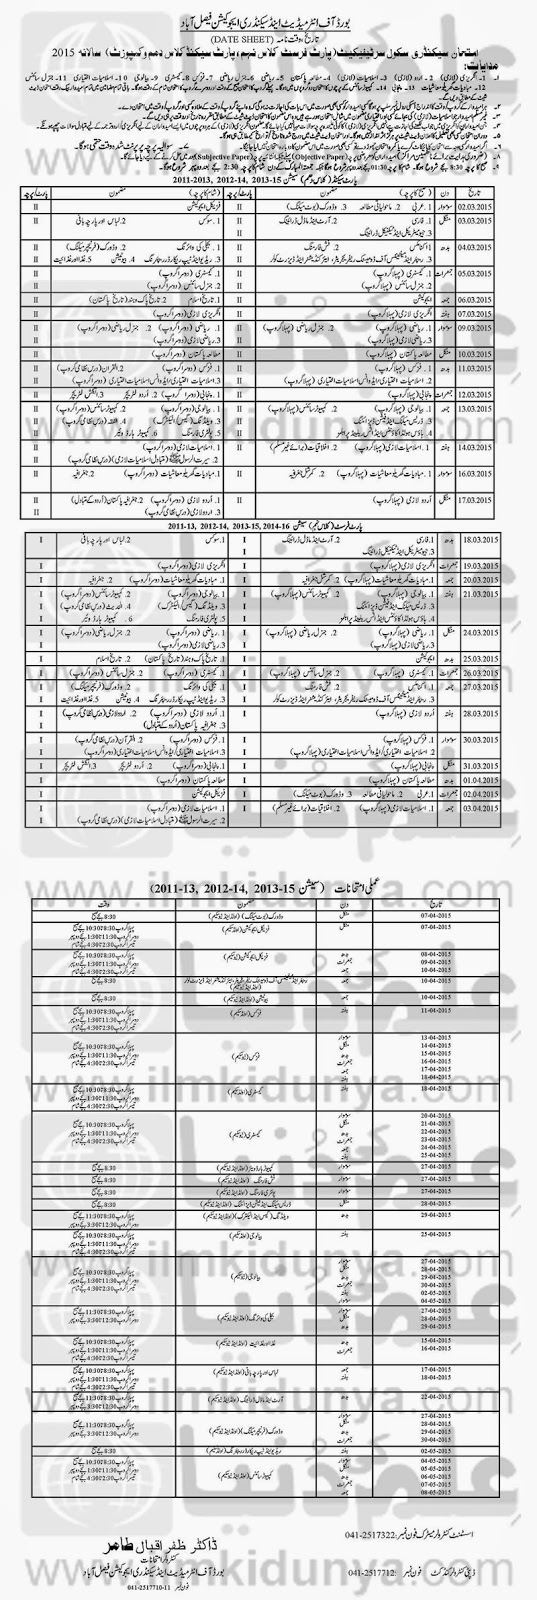 Pakistani boards results bise faisalabad date sheet of for 9th class time table